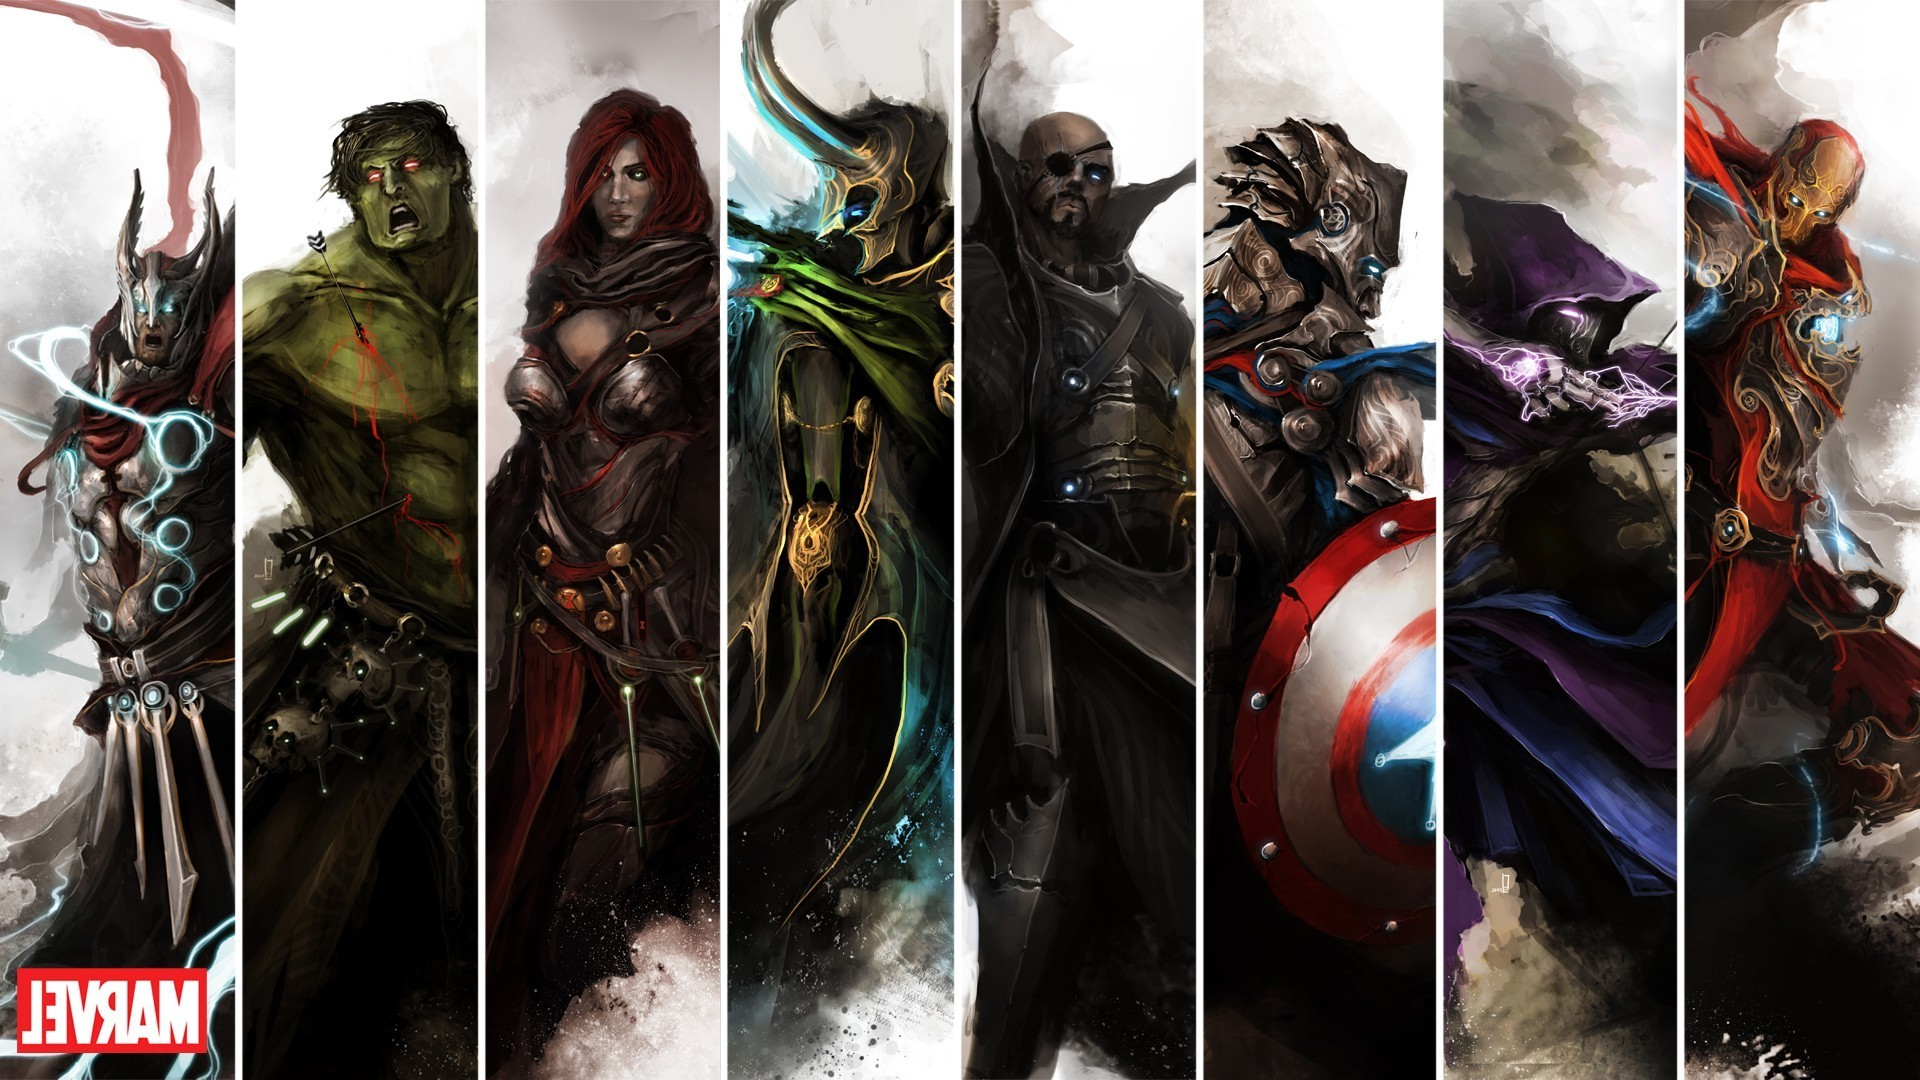 … marvel comics the avengers wallpapers hd desktop and mobile …